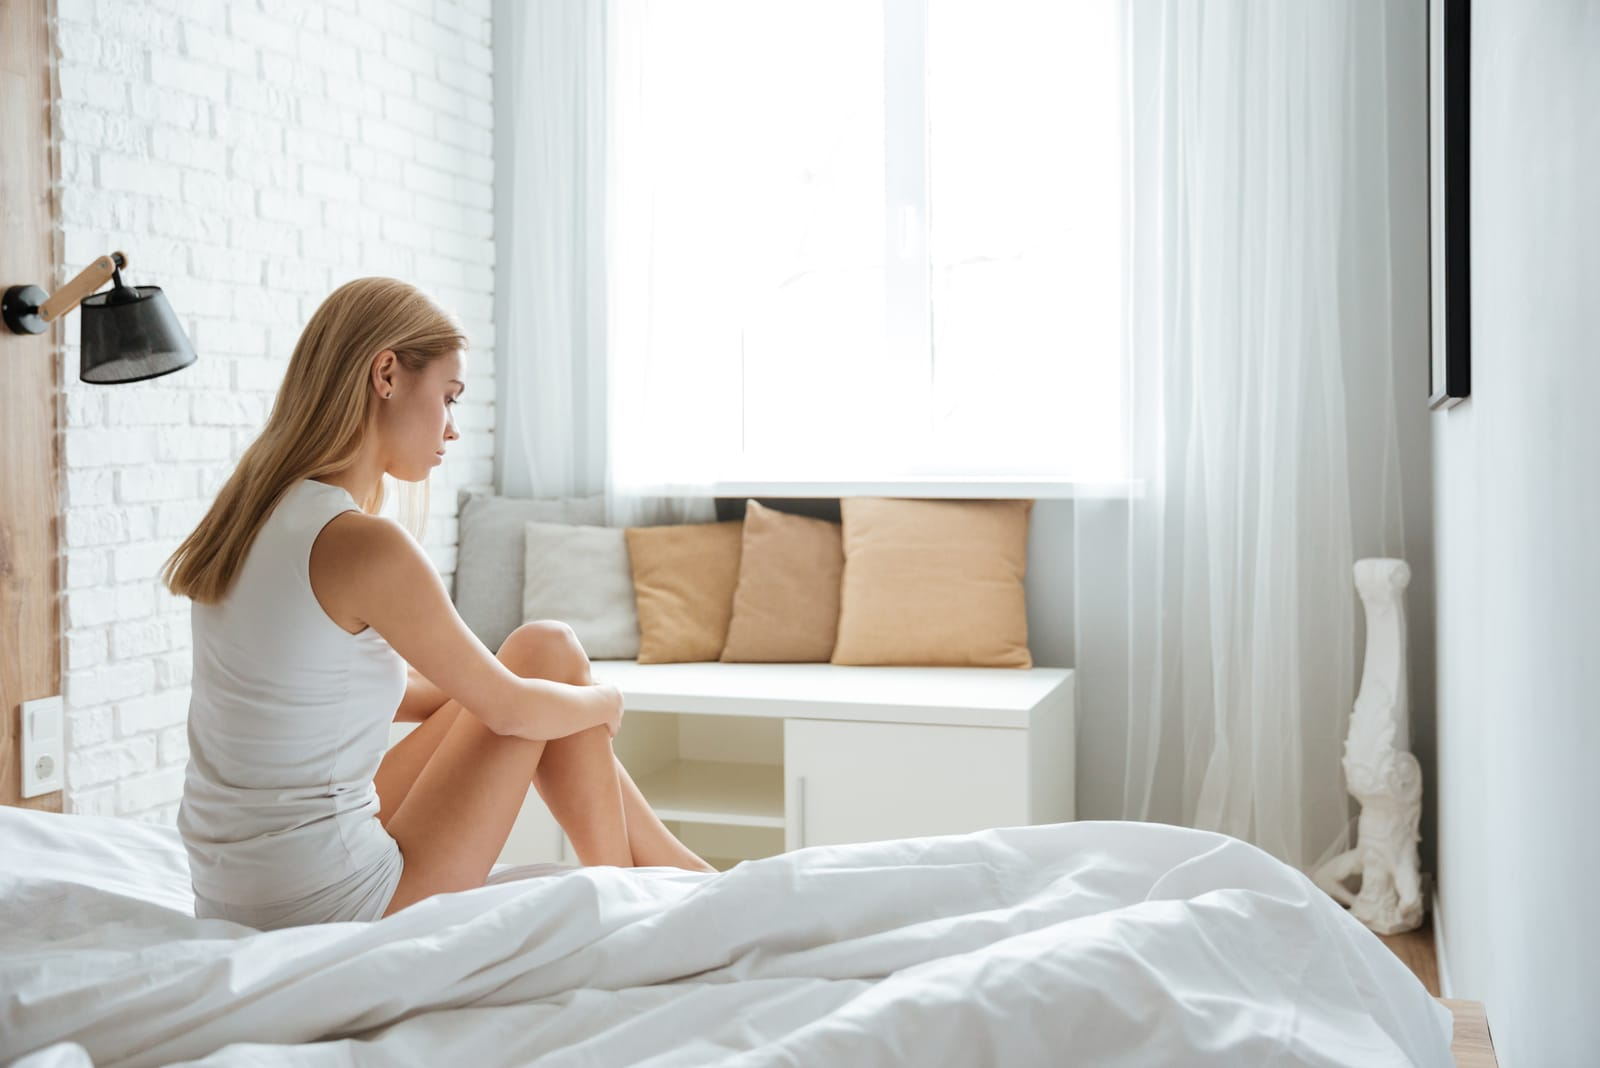 sad woman sitting on bed